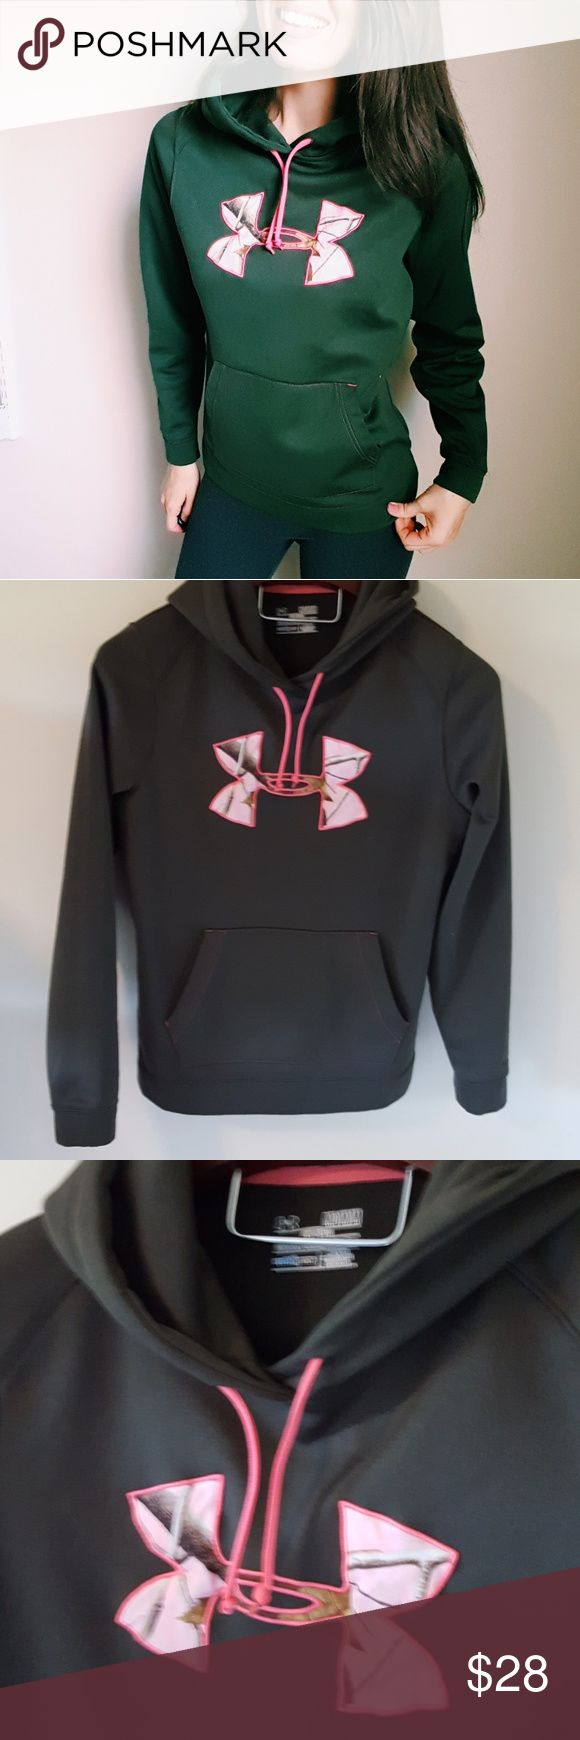 Under Armour | women's green and pink hoodie | M In excellent condition! Under Armour womens green and pink hoodie. Soft and so Warm! Bundle up! Offers always welcome:) Under Armour Tops Sweatshirts & Hoodies